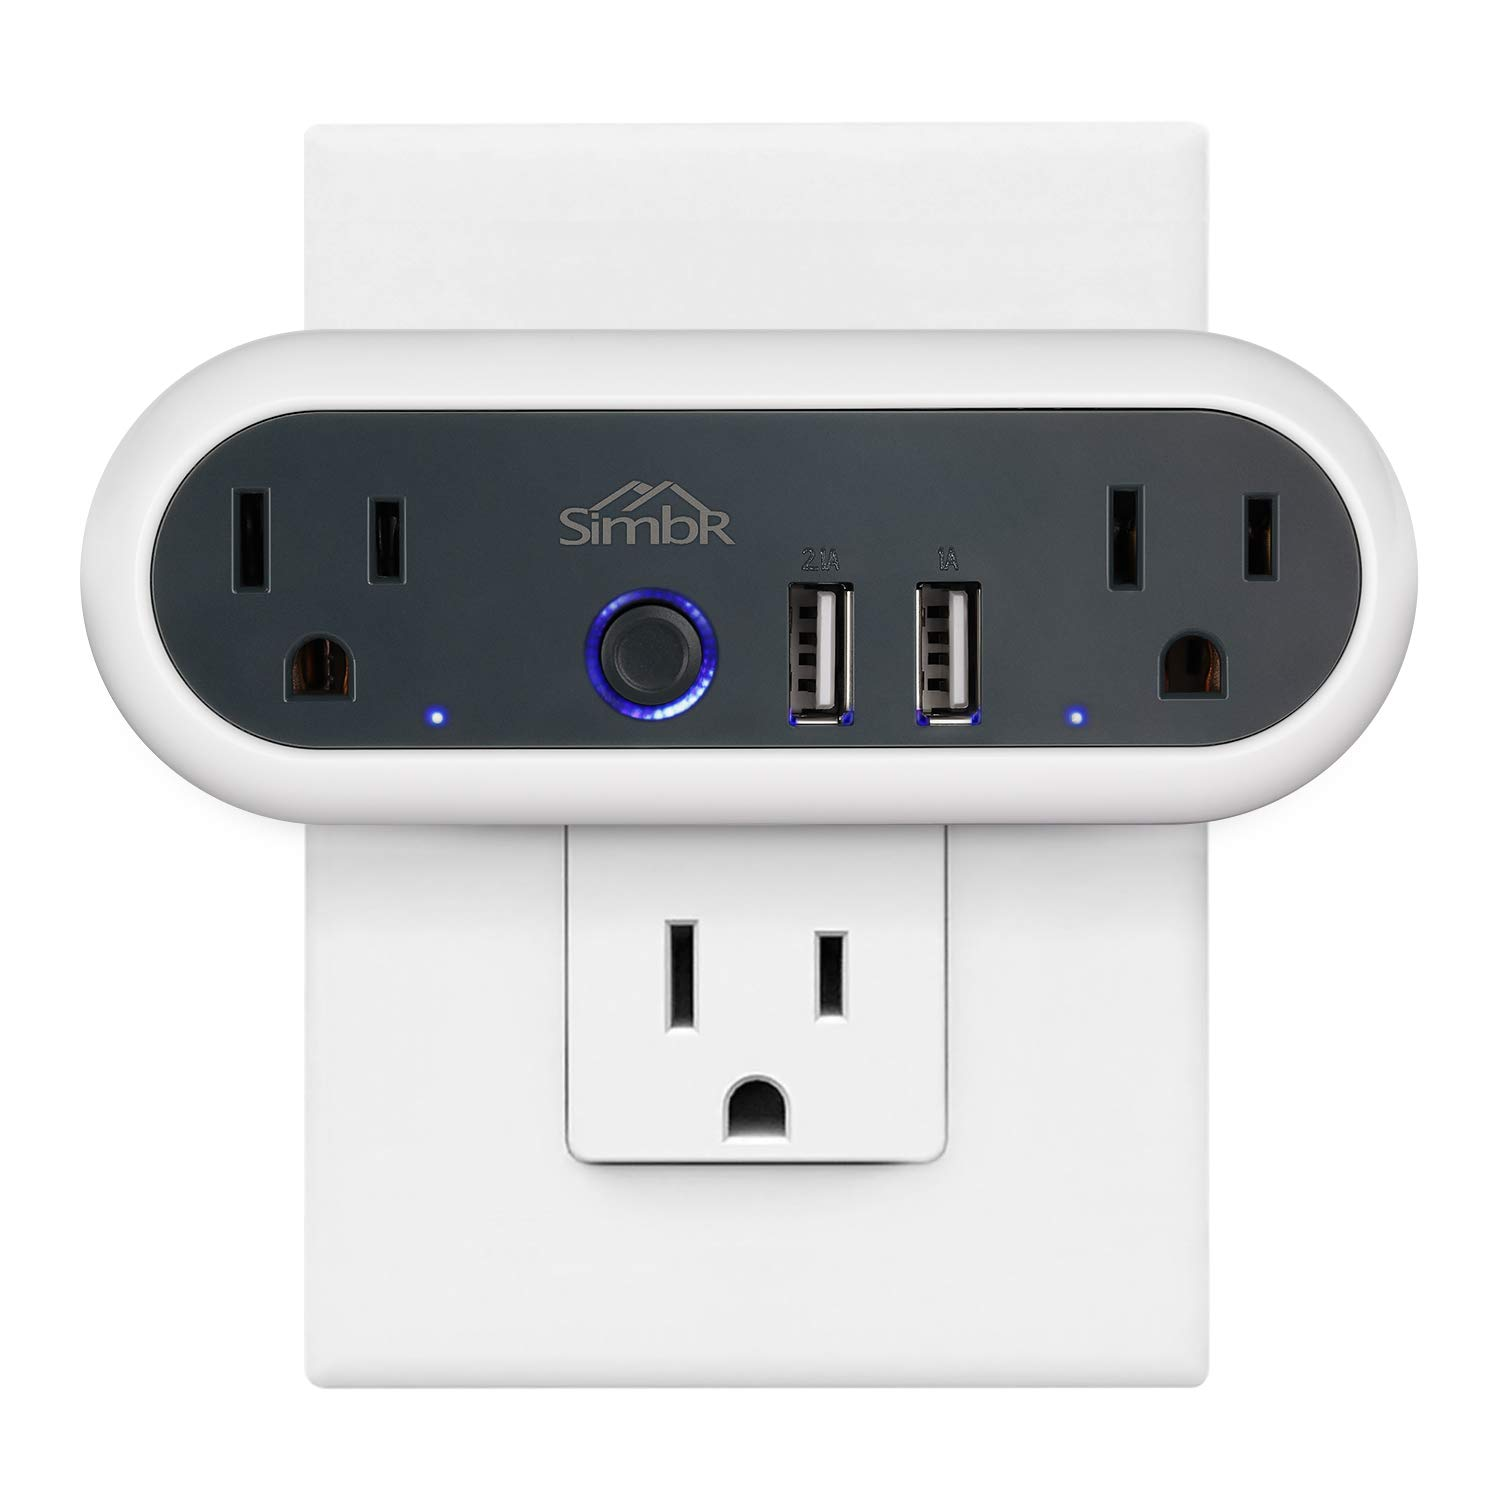 SIMBR Smart Wi-Fi -Plug, No Hub Required, Compatible with Amazon Alexa Google Home, Remote Control your Devices from Anywhere, Two Wi-Fi Sockets, Two USB Connectors